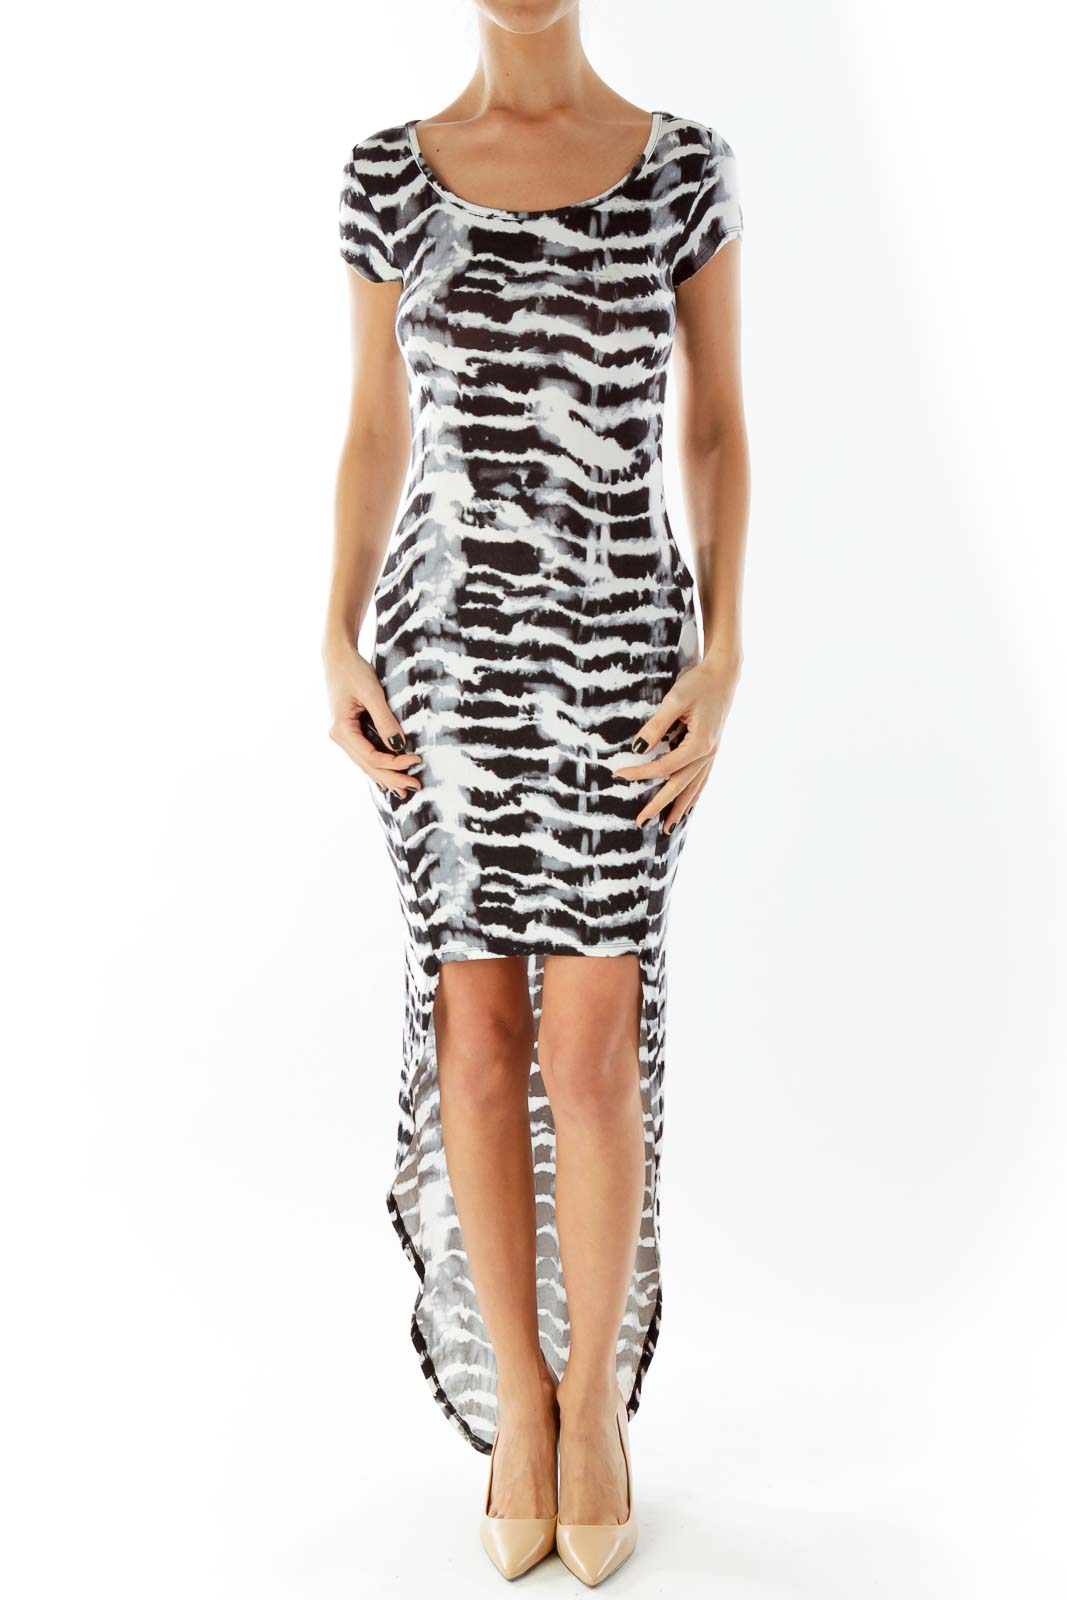 Black White Zebra Print High Low Day Dress